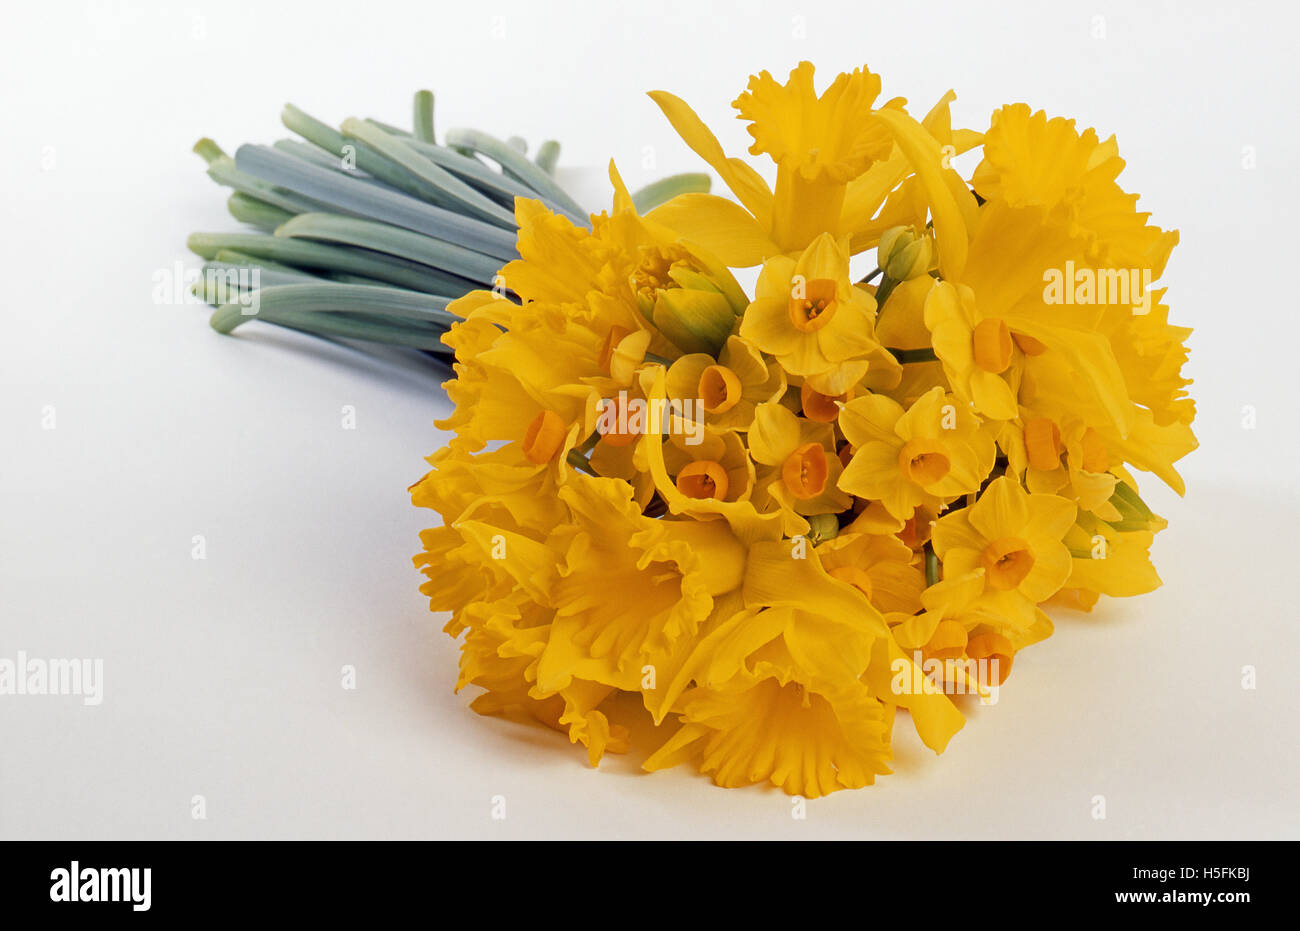 Studio image of a bunch of Daffodils and Jonquils (Narcissus) Stock Photo